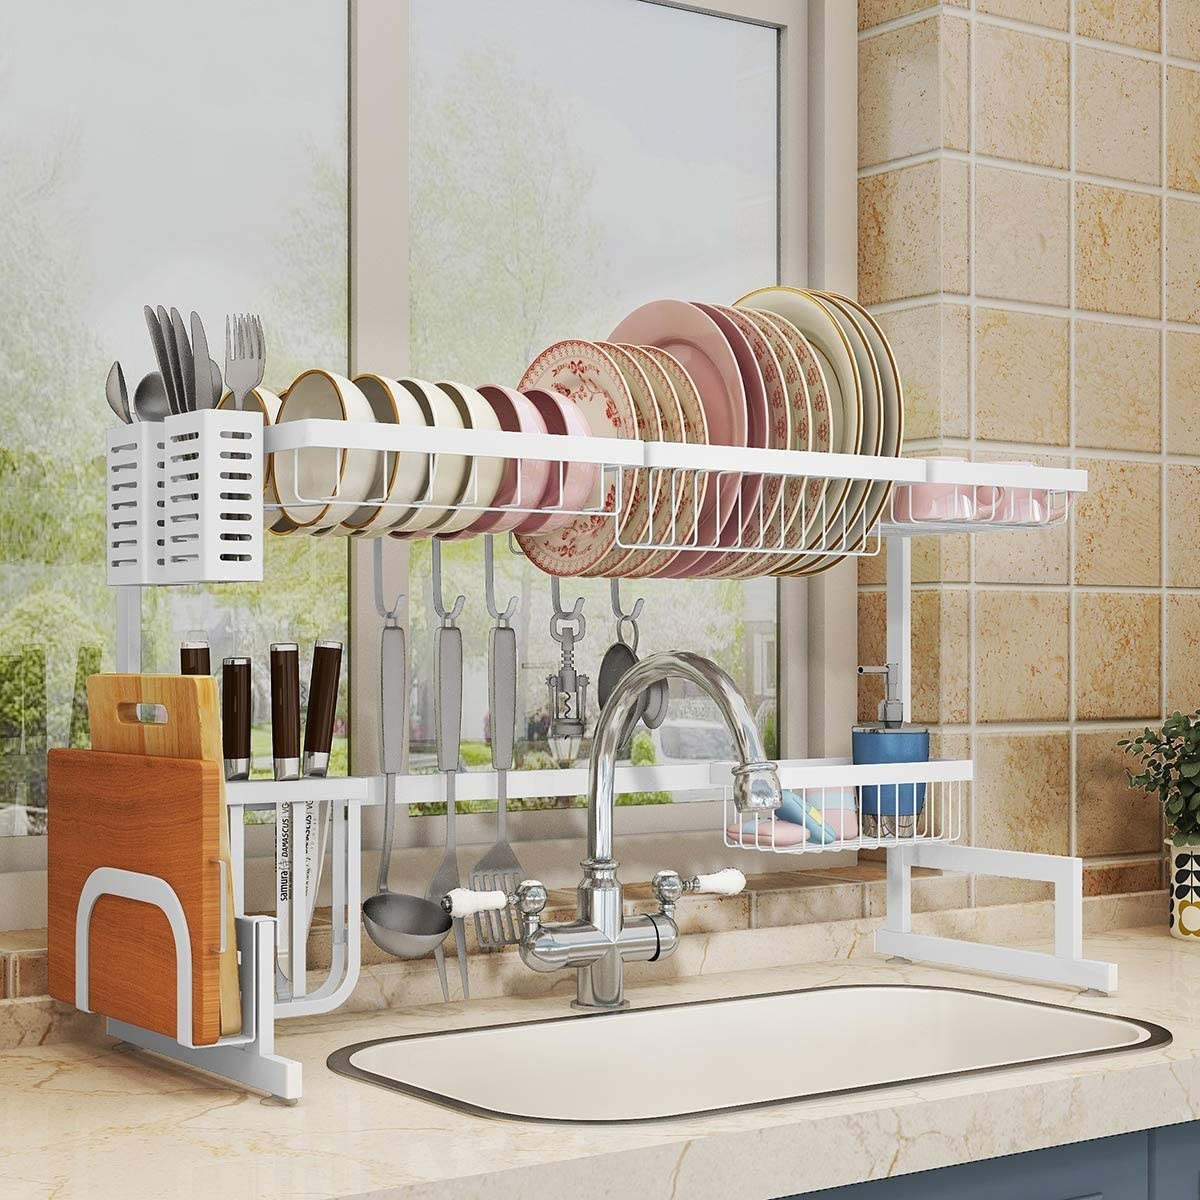 The drying rack above a kitchen sink with places to put bowls, plates, cups, silverware, cutting boards, knives, and other utensils